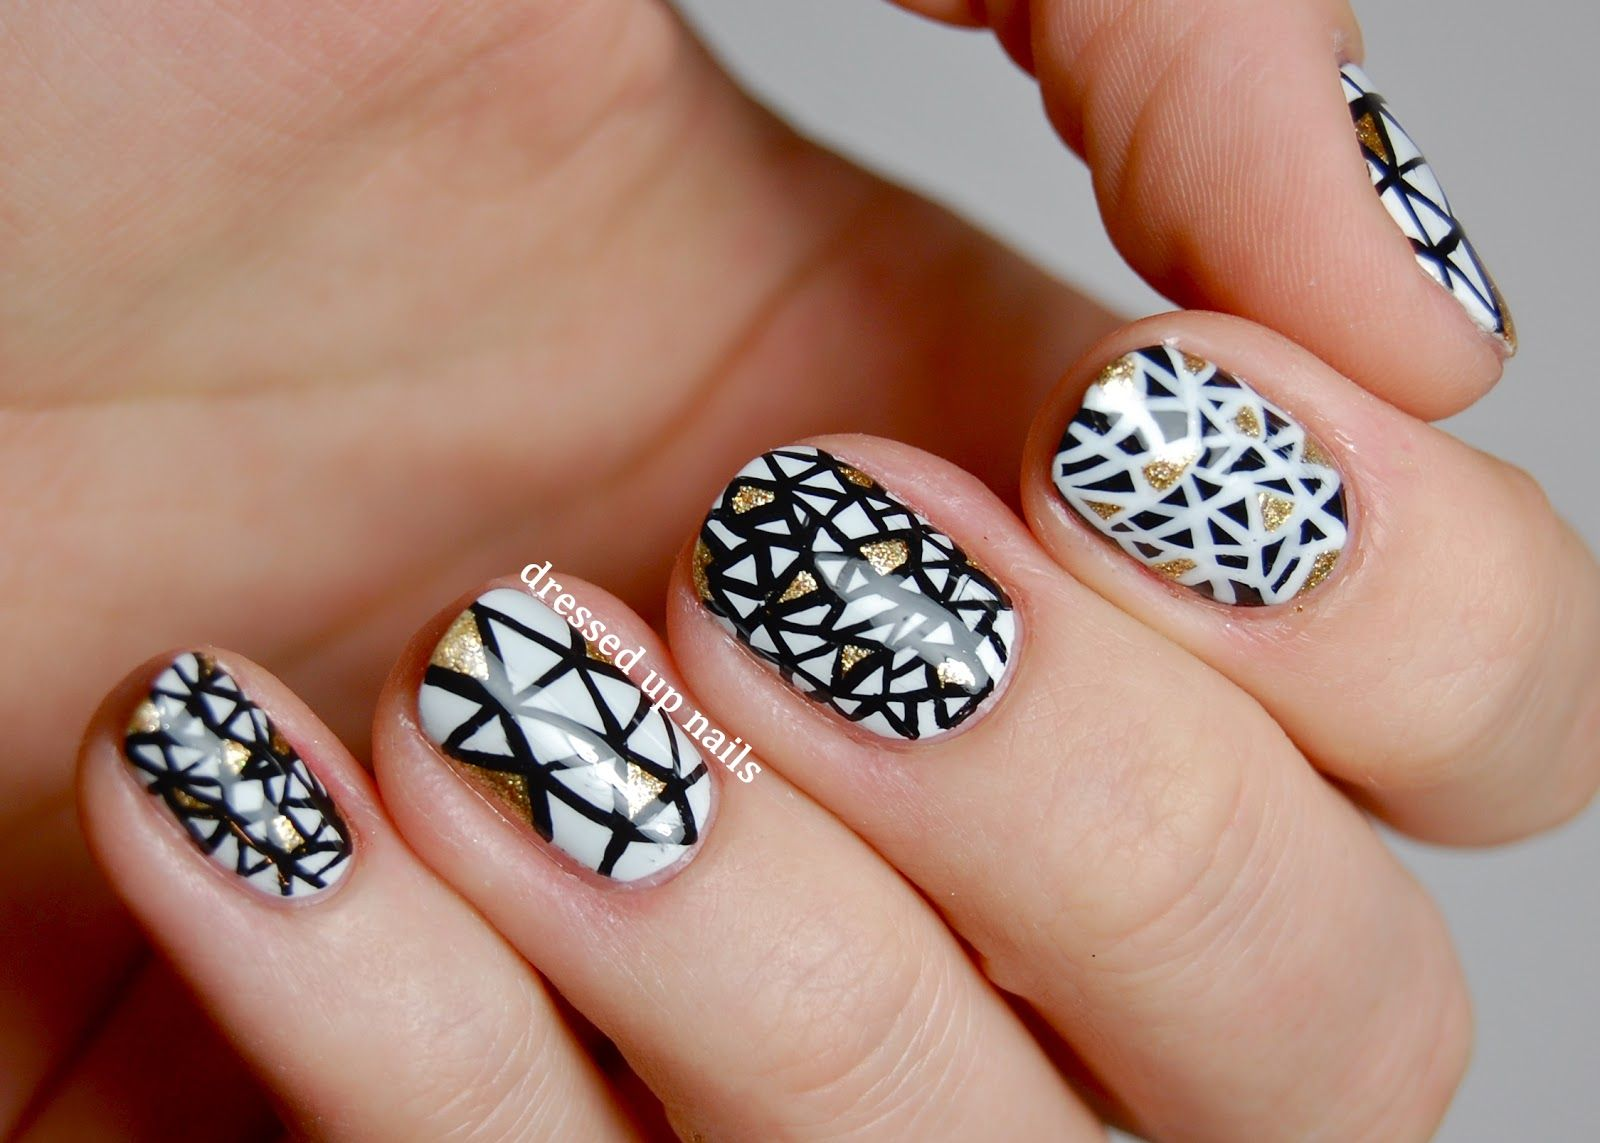 Black and white triangle geometric nail art 1 nails pinterest dressed up nails black and white triangle nail art if i was talented prinsesfo Image collections